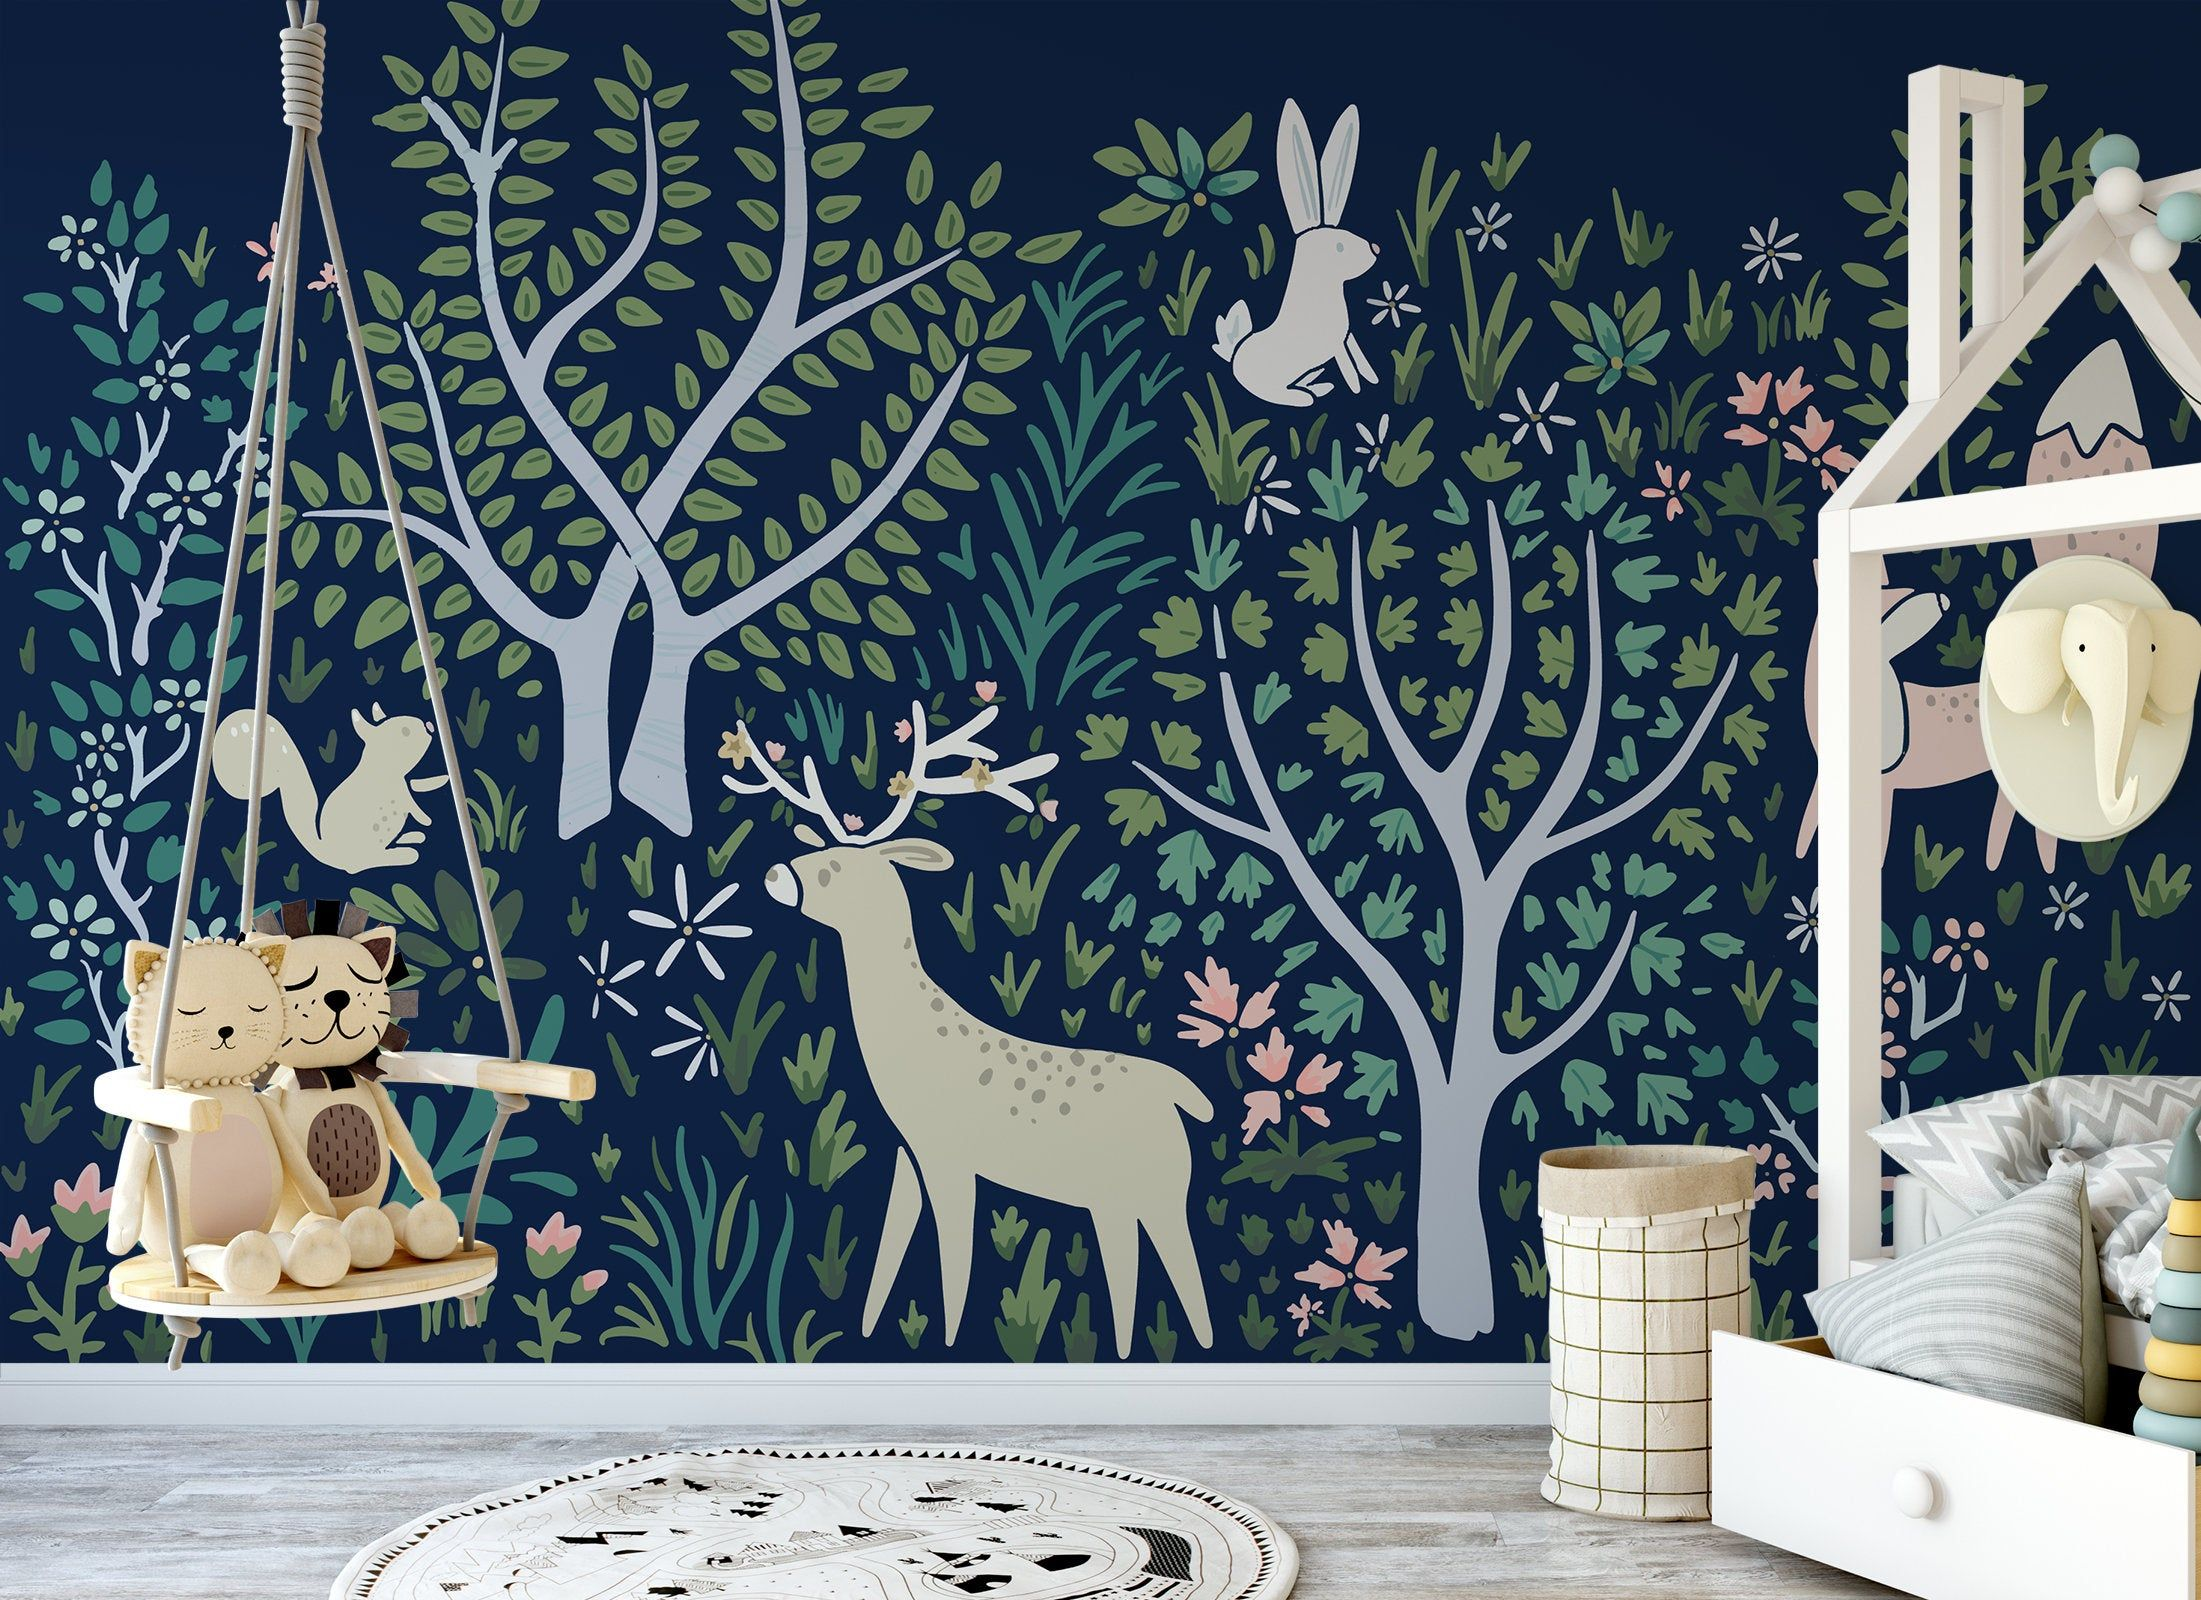 Pin By Agustin Ruidismo On Deco Enfants Forest Wall Mural Wall Murals Nursery Wall Murals